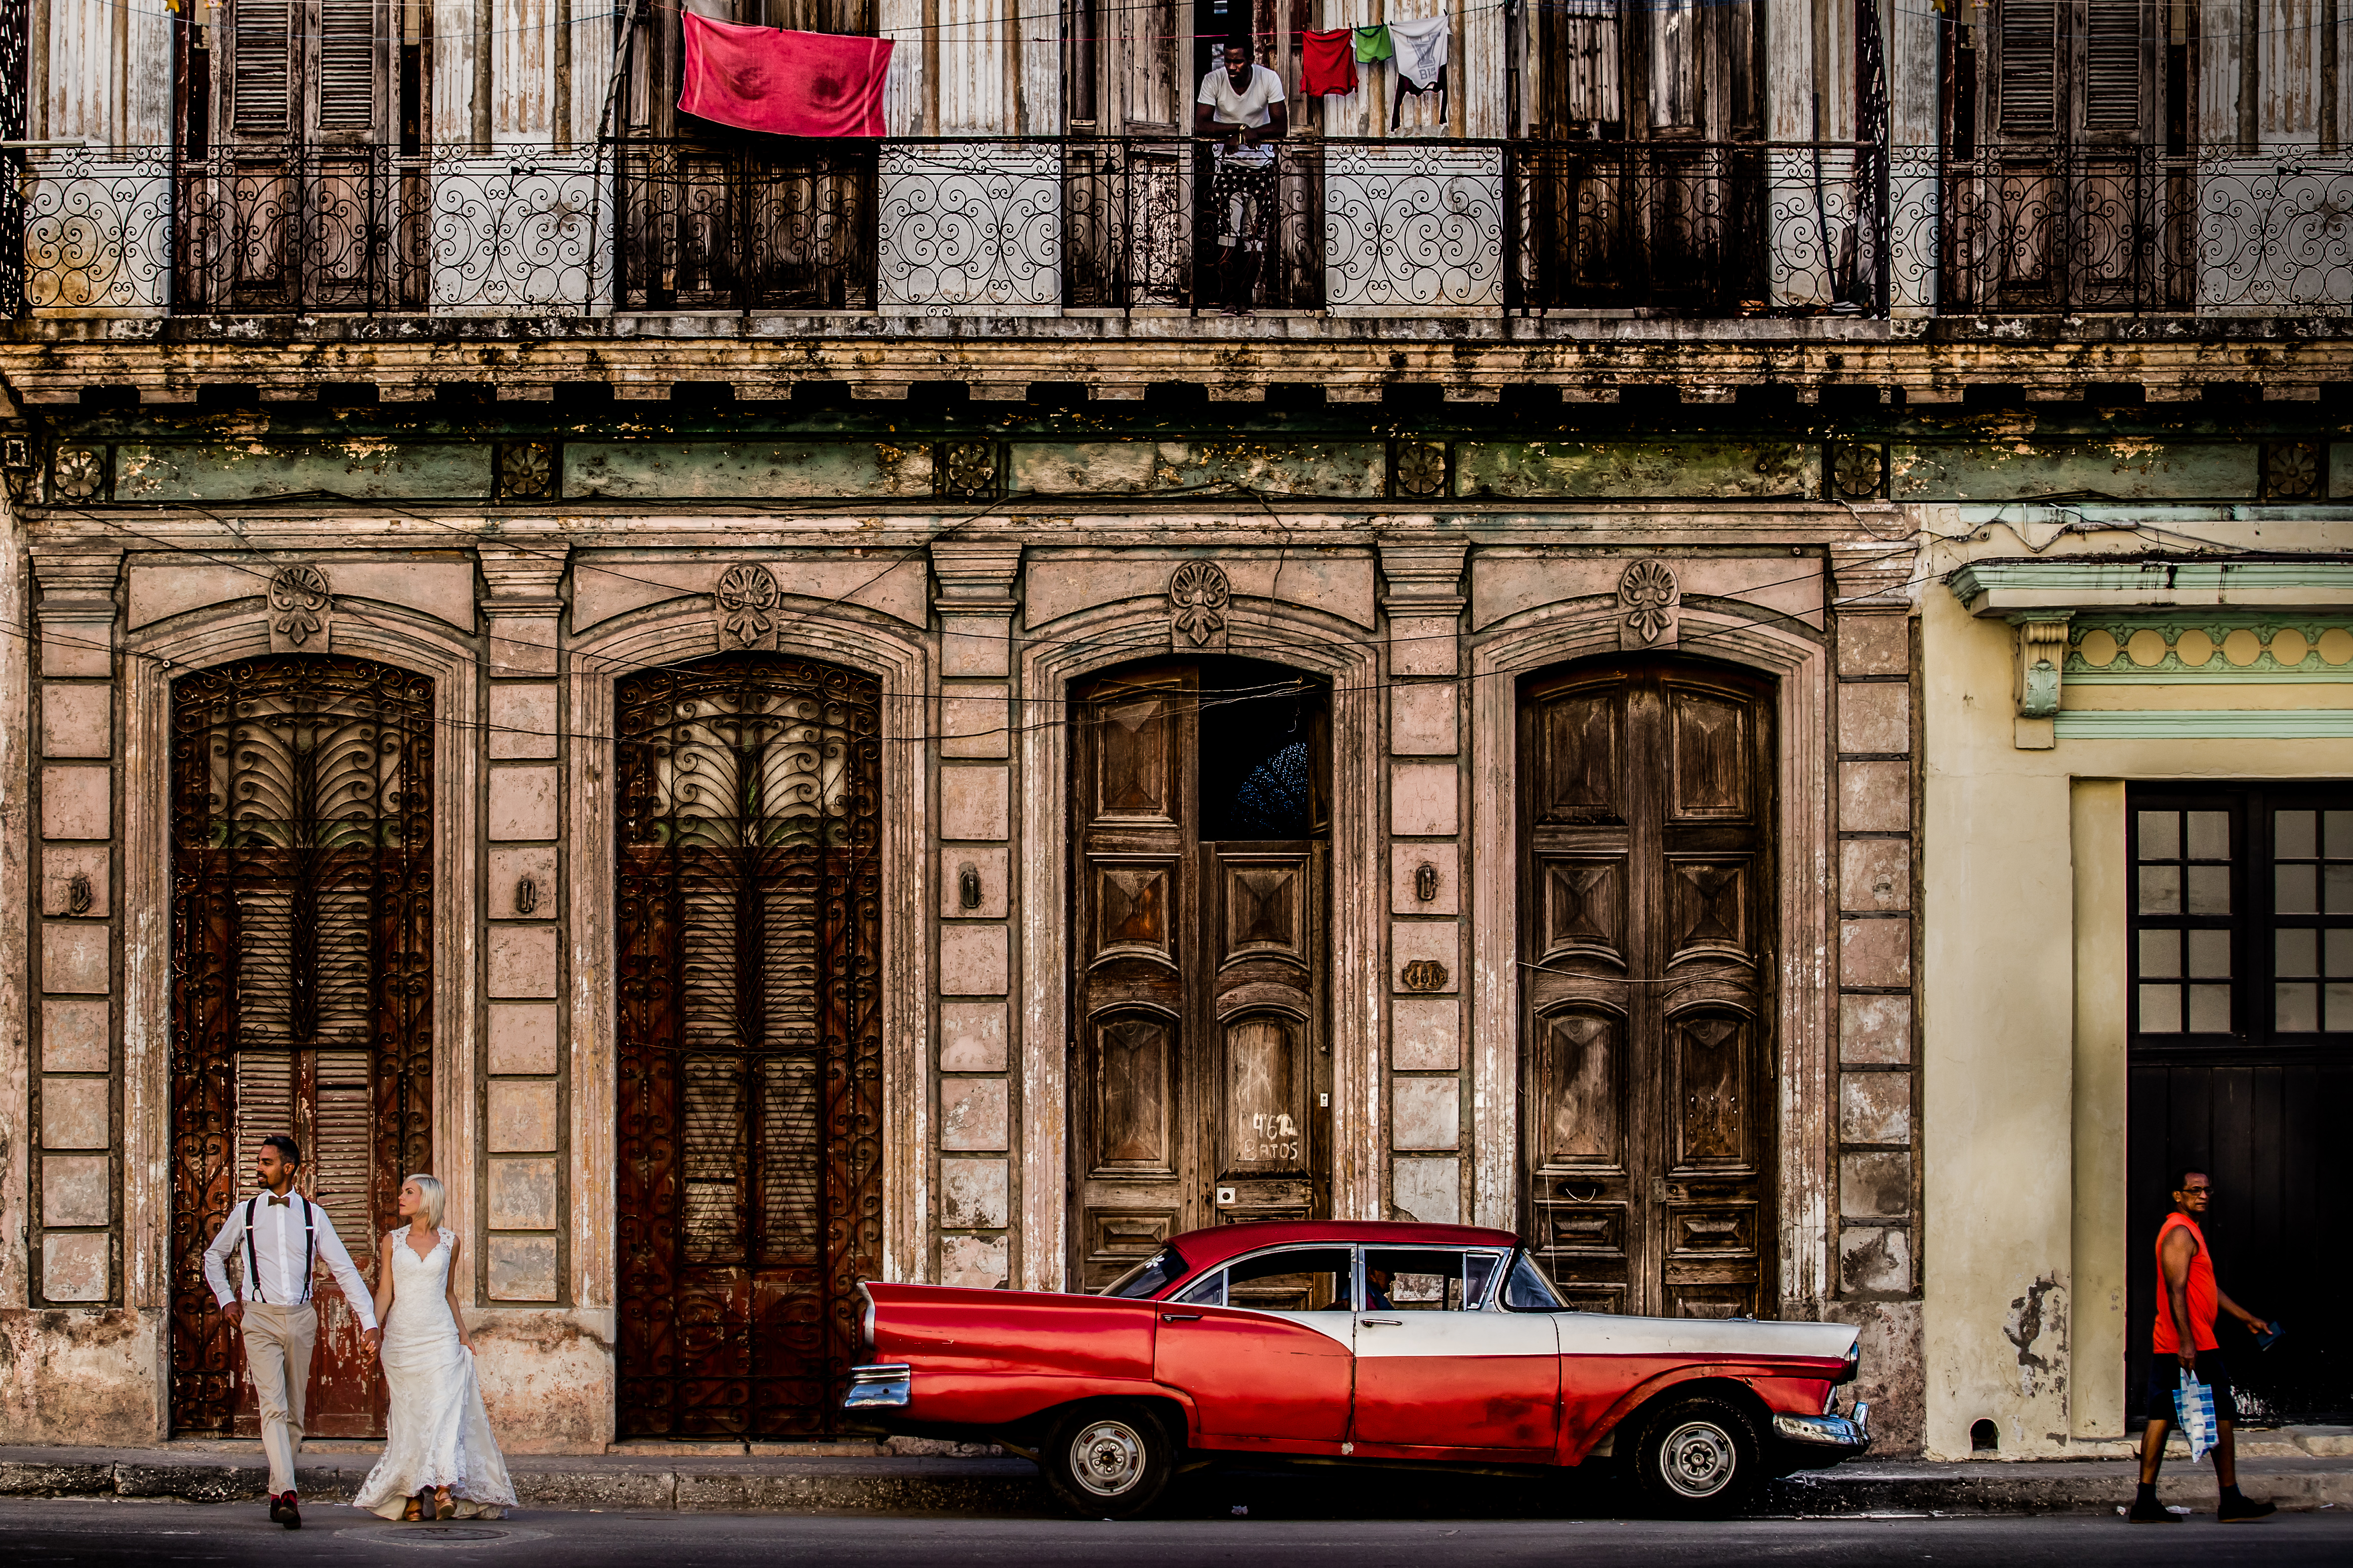 On the streets of Havana with retro car - photo by Eppel Photography